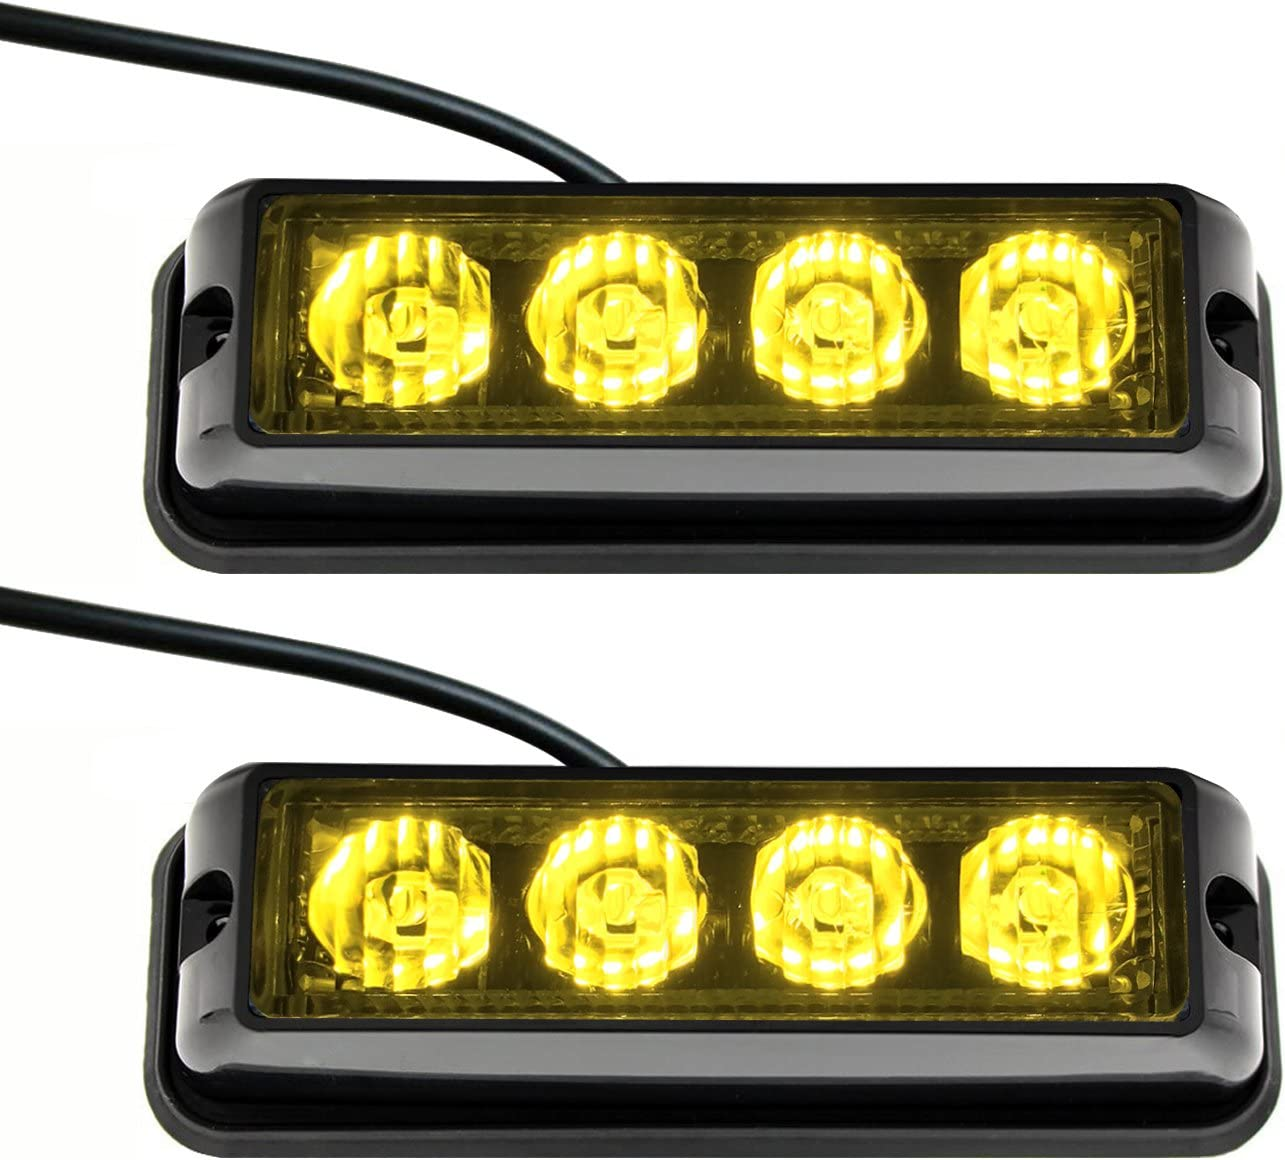 Strobelight Bar 4 LED with Super Bright Emergency Beacon Flash Caution Strobe Light Bar with 17 Different Flashing-2PCS (Yellow)